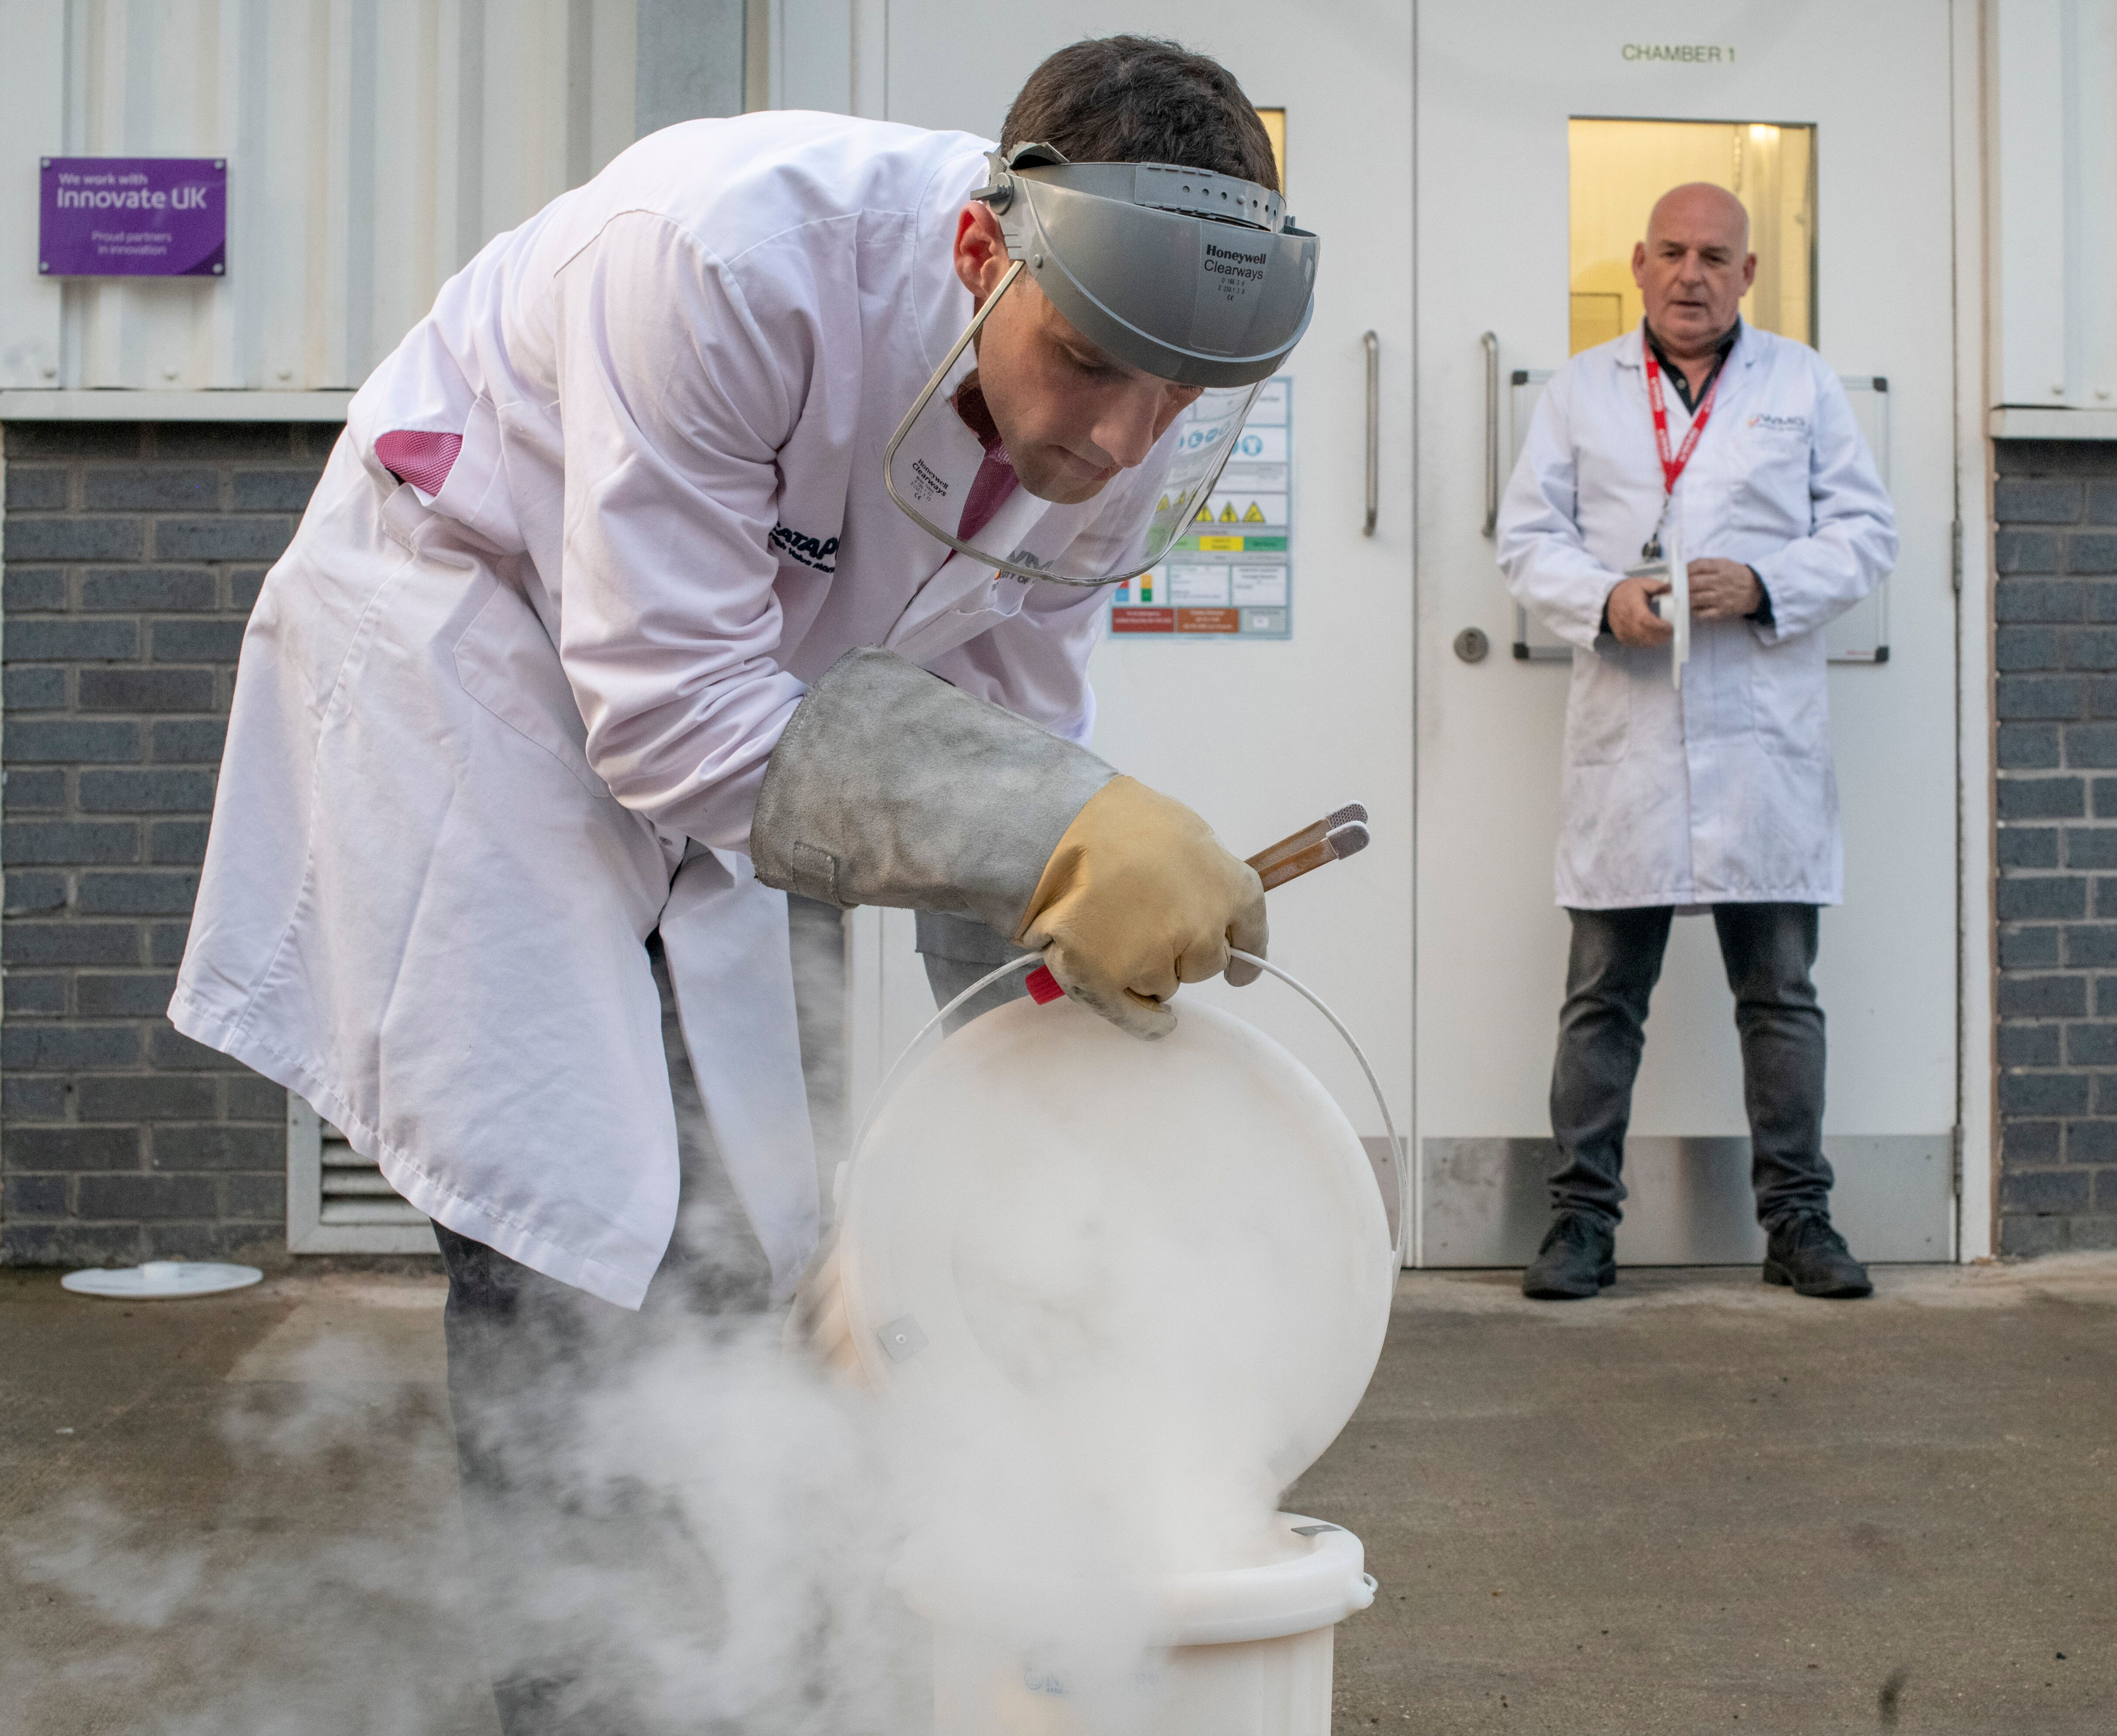 Grandjean wears a white lab coat and a safety mask as he looks down into a container with white gas rising out of it containing the battery